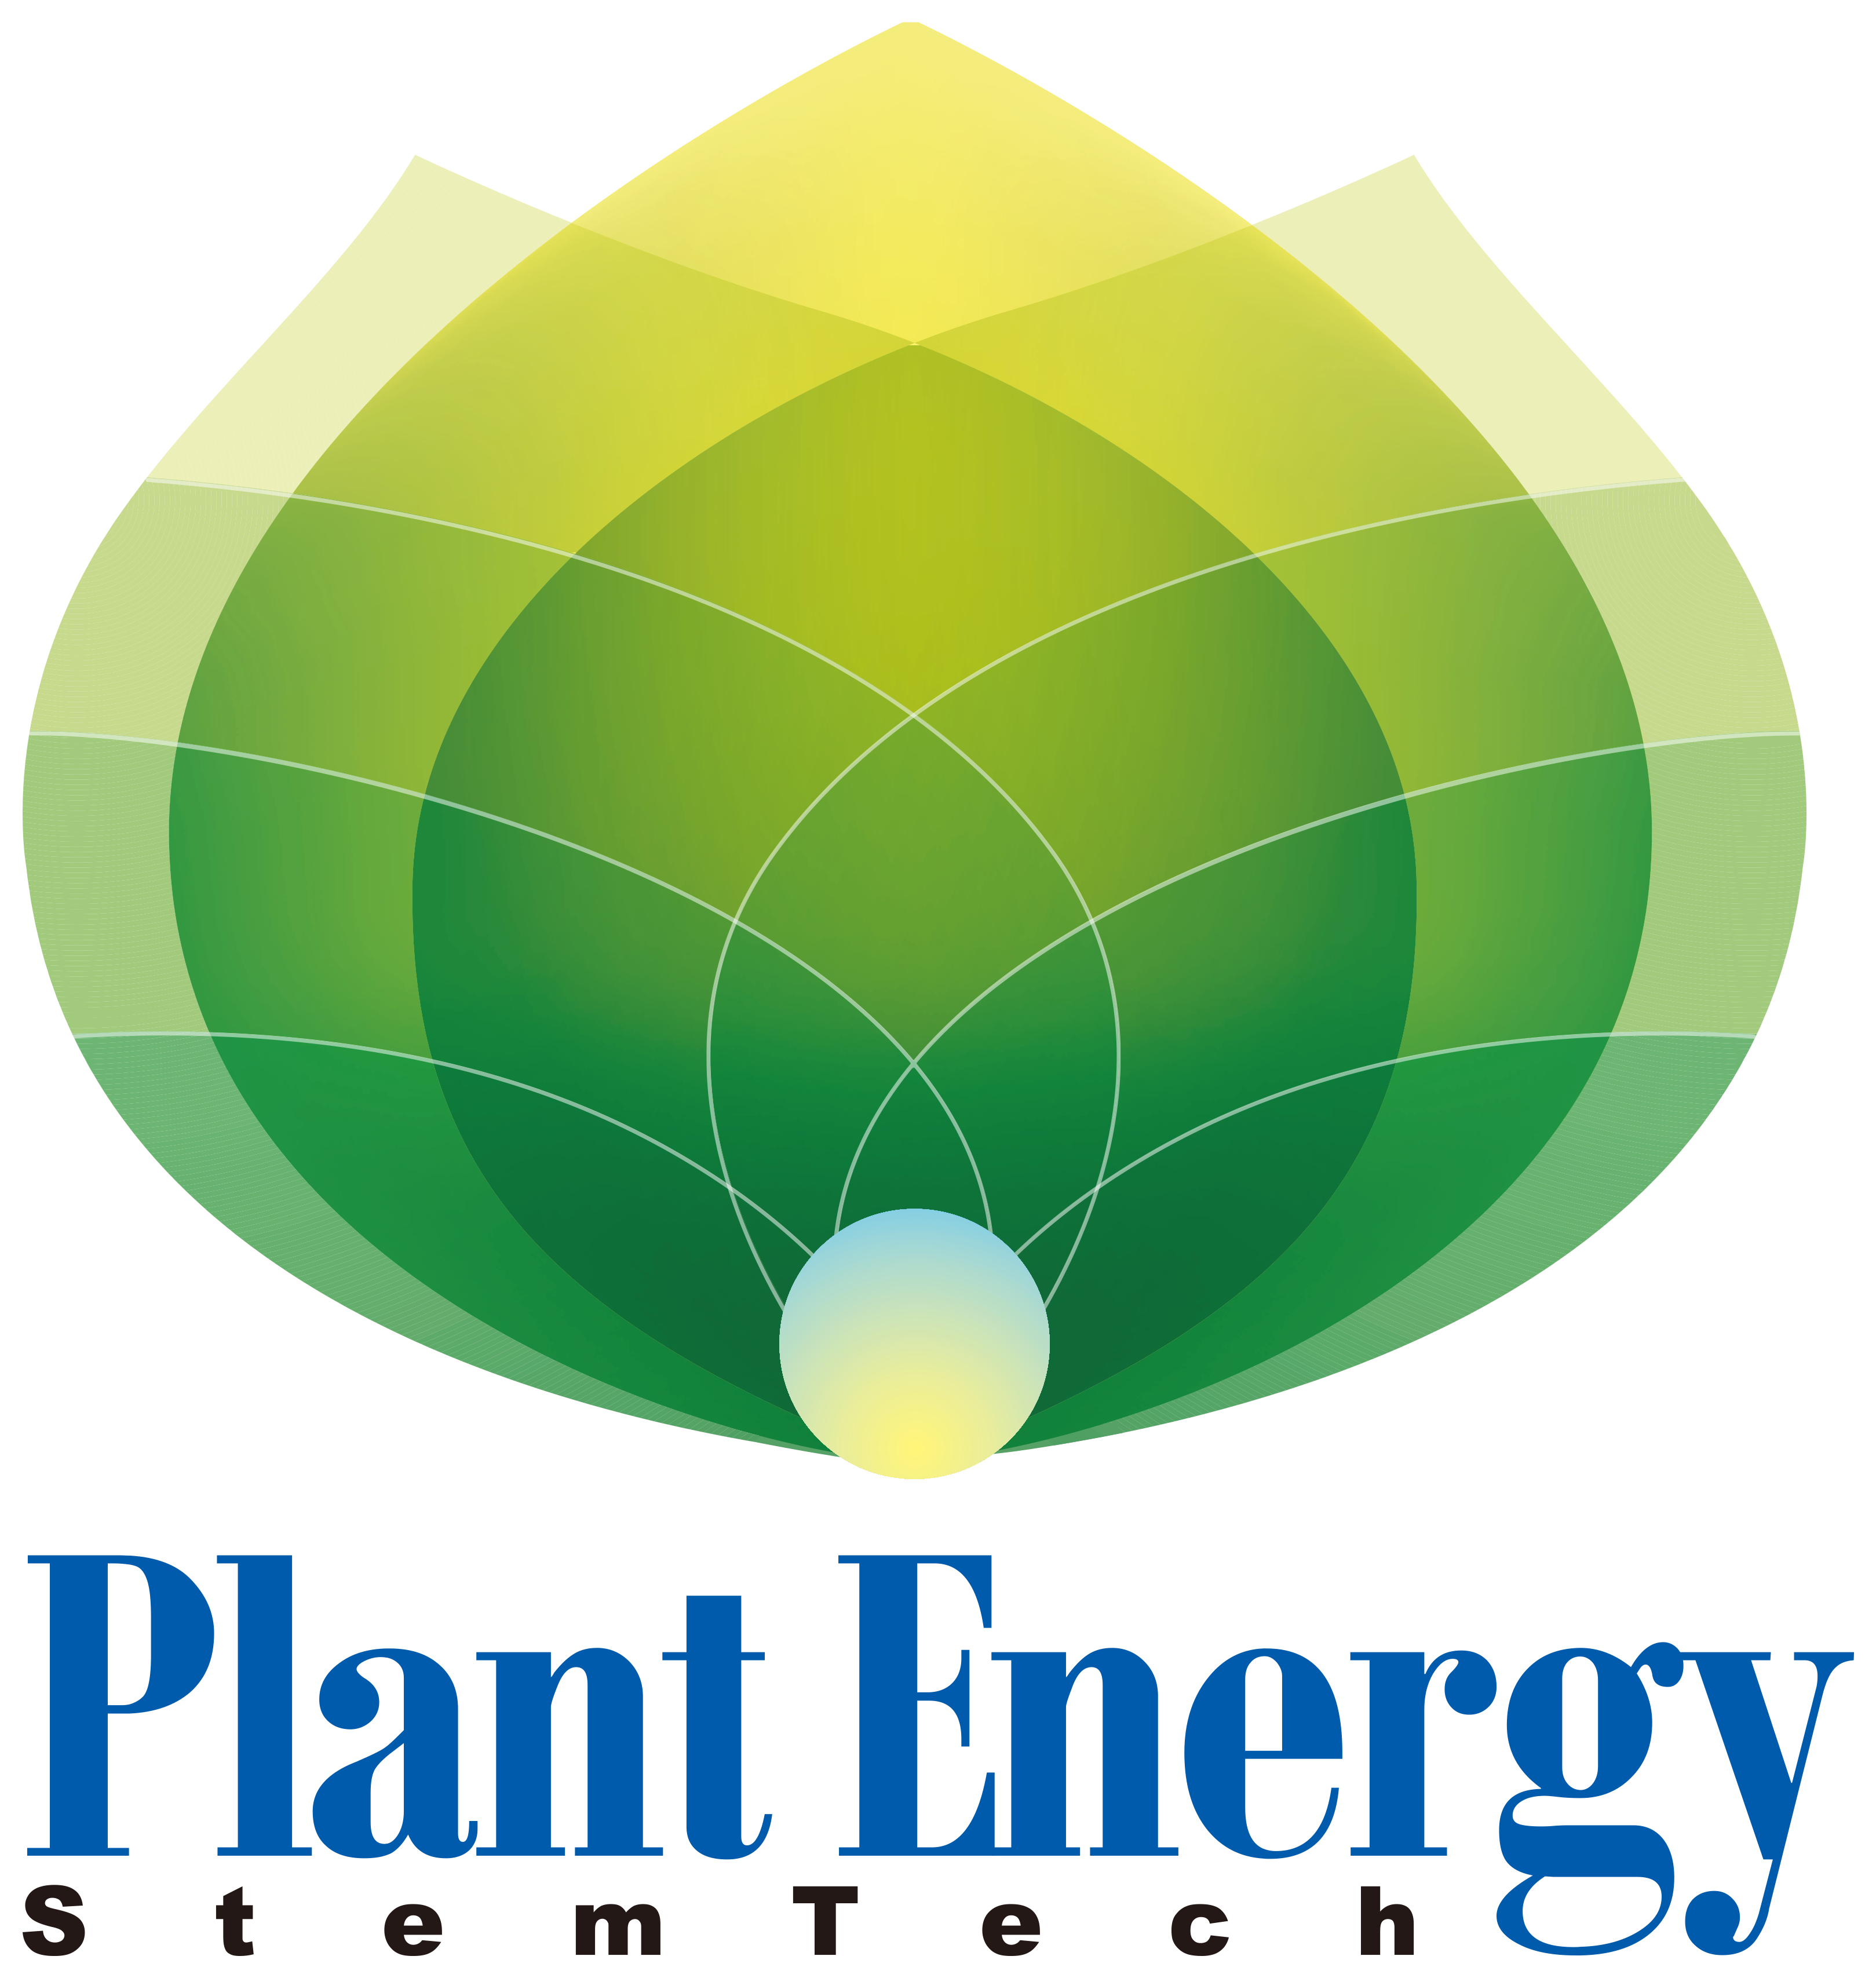 Plant Energy Stemtech Technology Ltd.